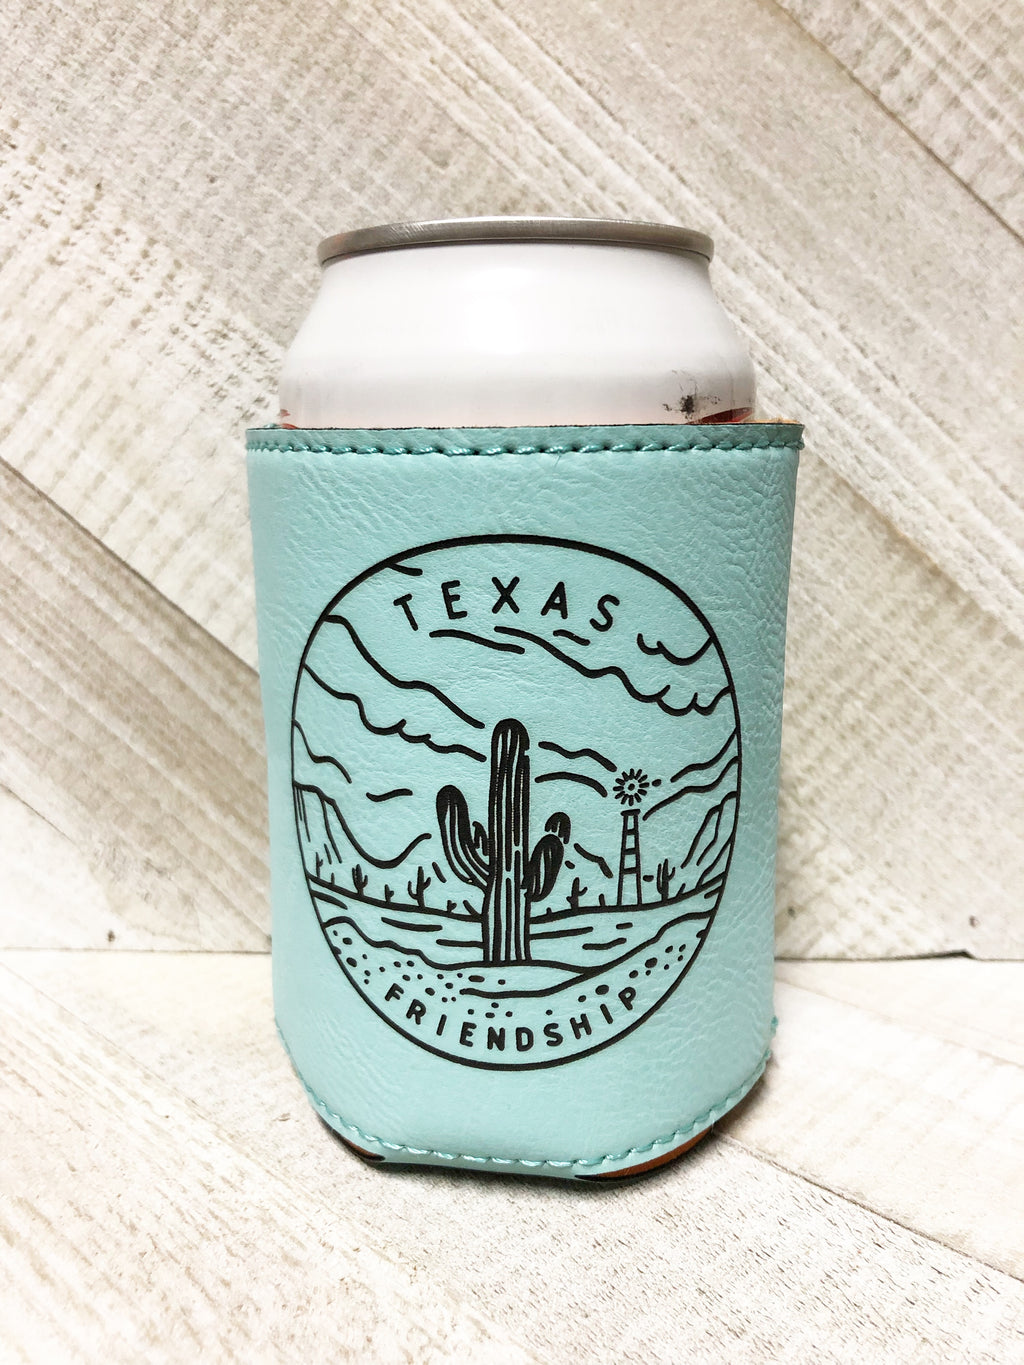 Engraved Beverage Koozie Holder- Texas Friendship Teal Blue